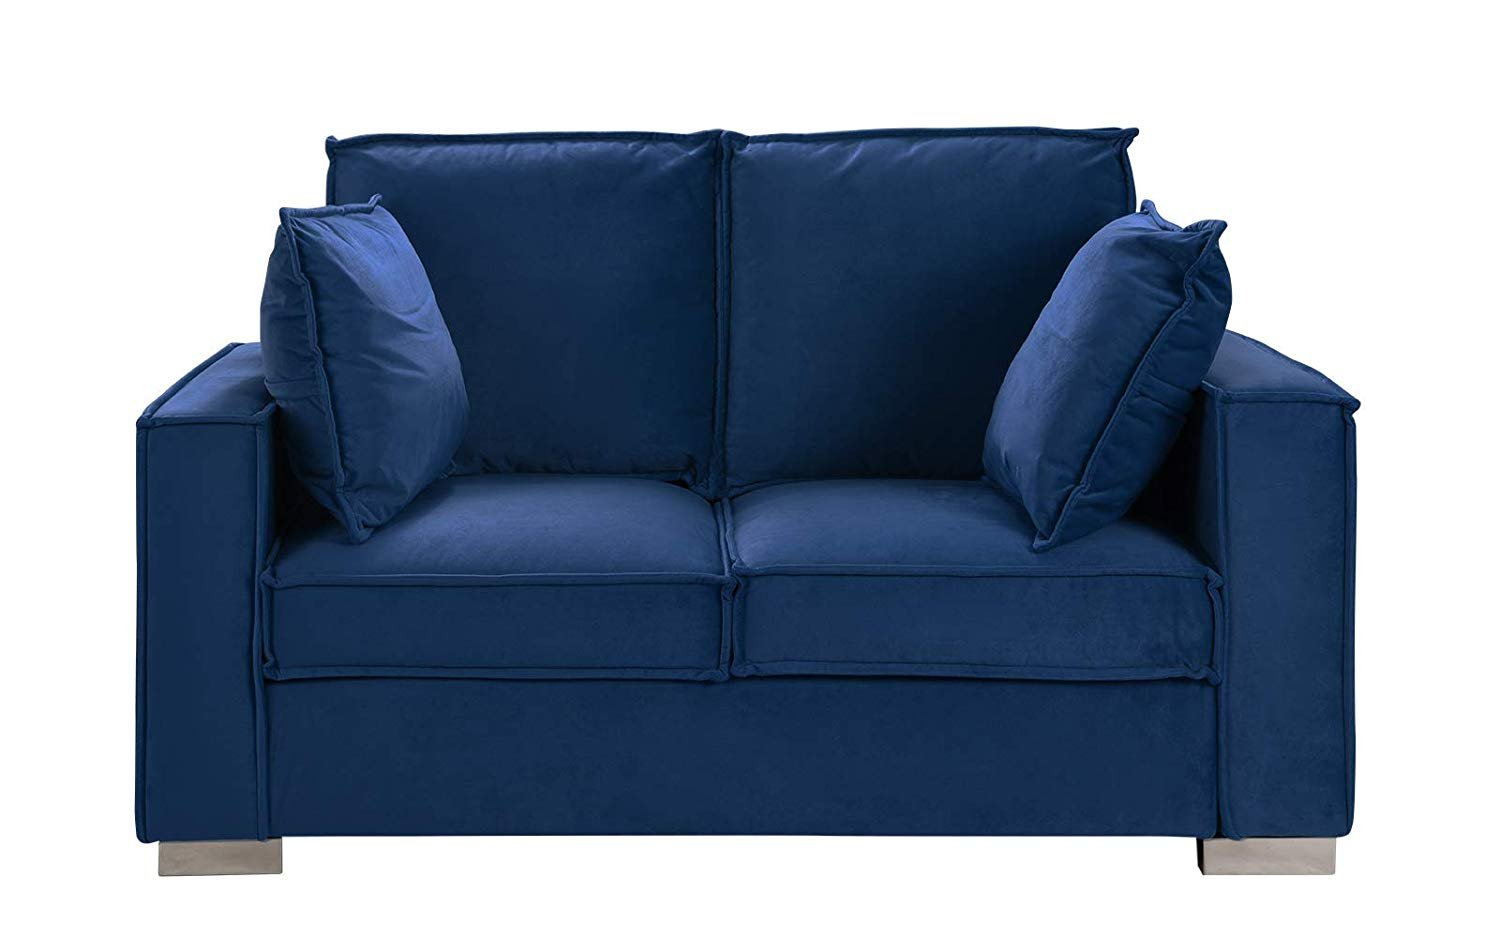 Details about Royal Blue Brush Microfiber Sofa, Small Space Loveseat Couch  w/ Pillows